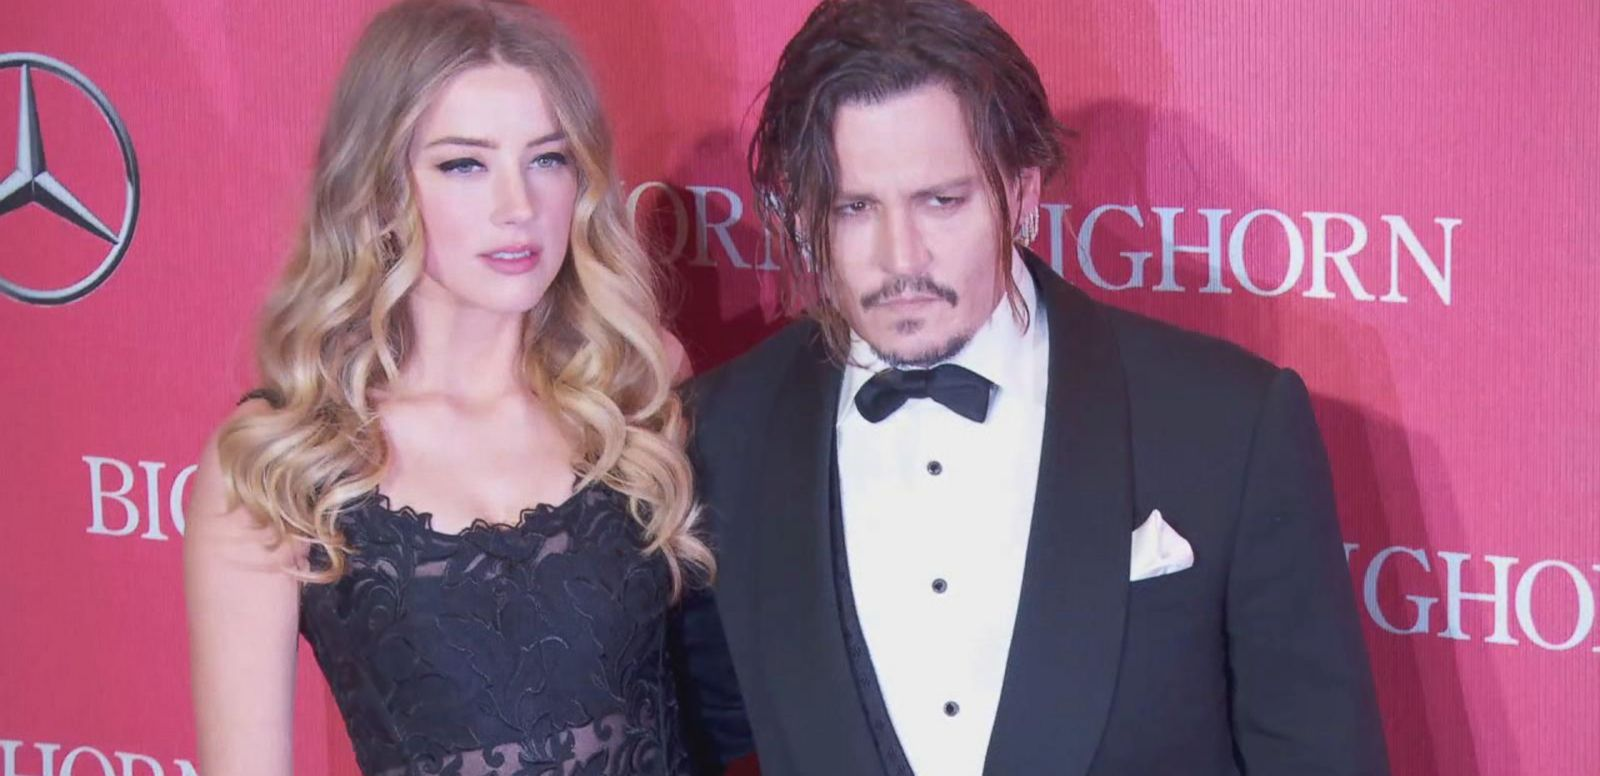 VIDEO: Johnny Depp and Amber Heard Reportedly Divorcing